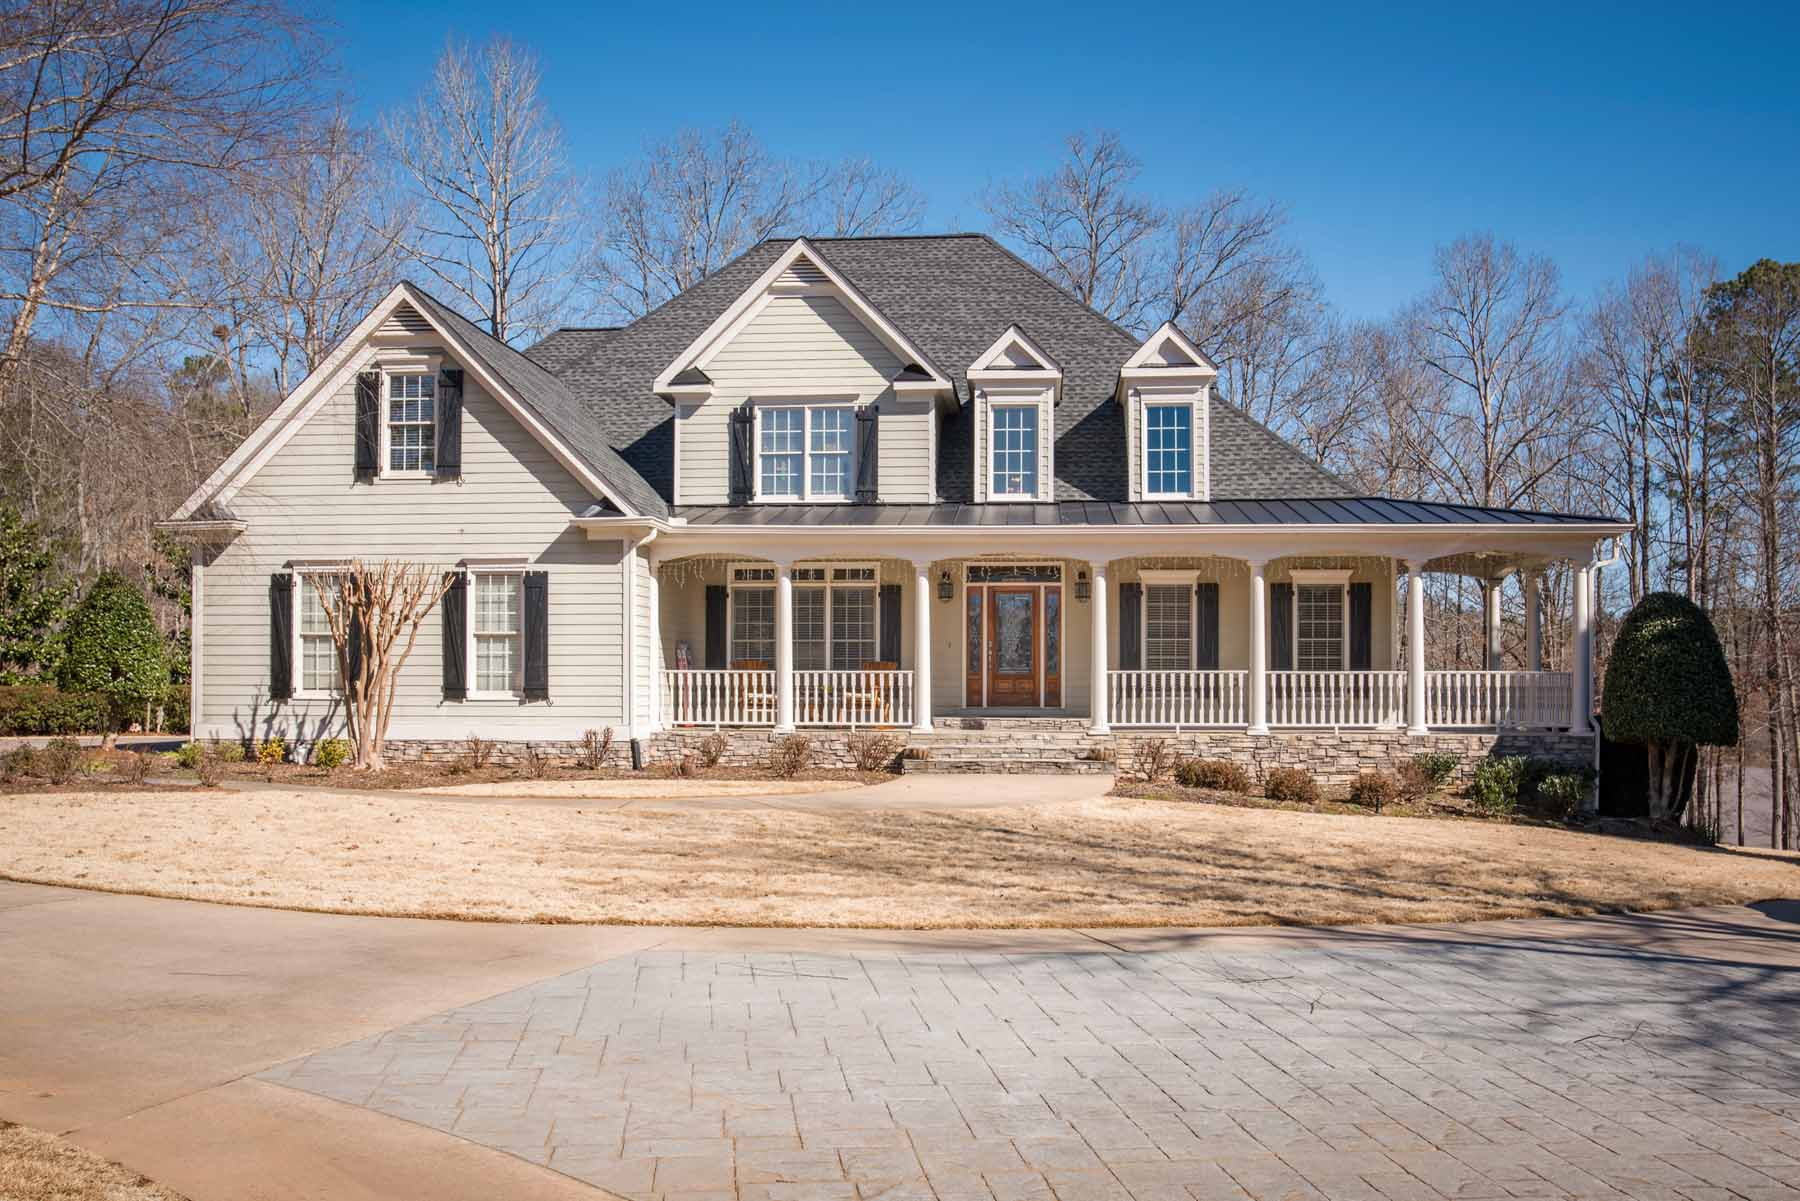 Single Family Home for Sale at Lake View Masterpiece 7525 Matts Landing Point Cumming, Georgia, 30028 United States